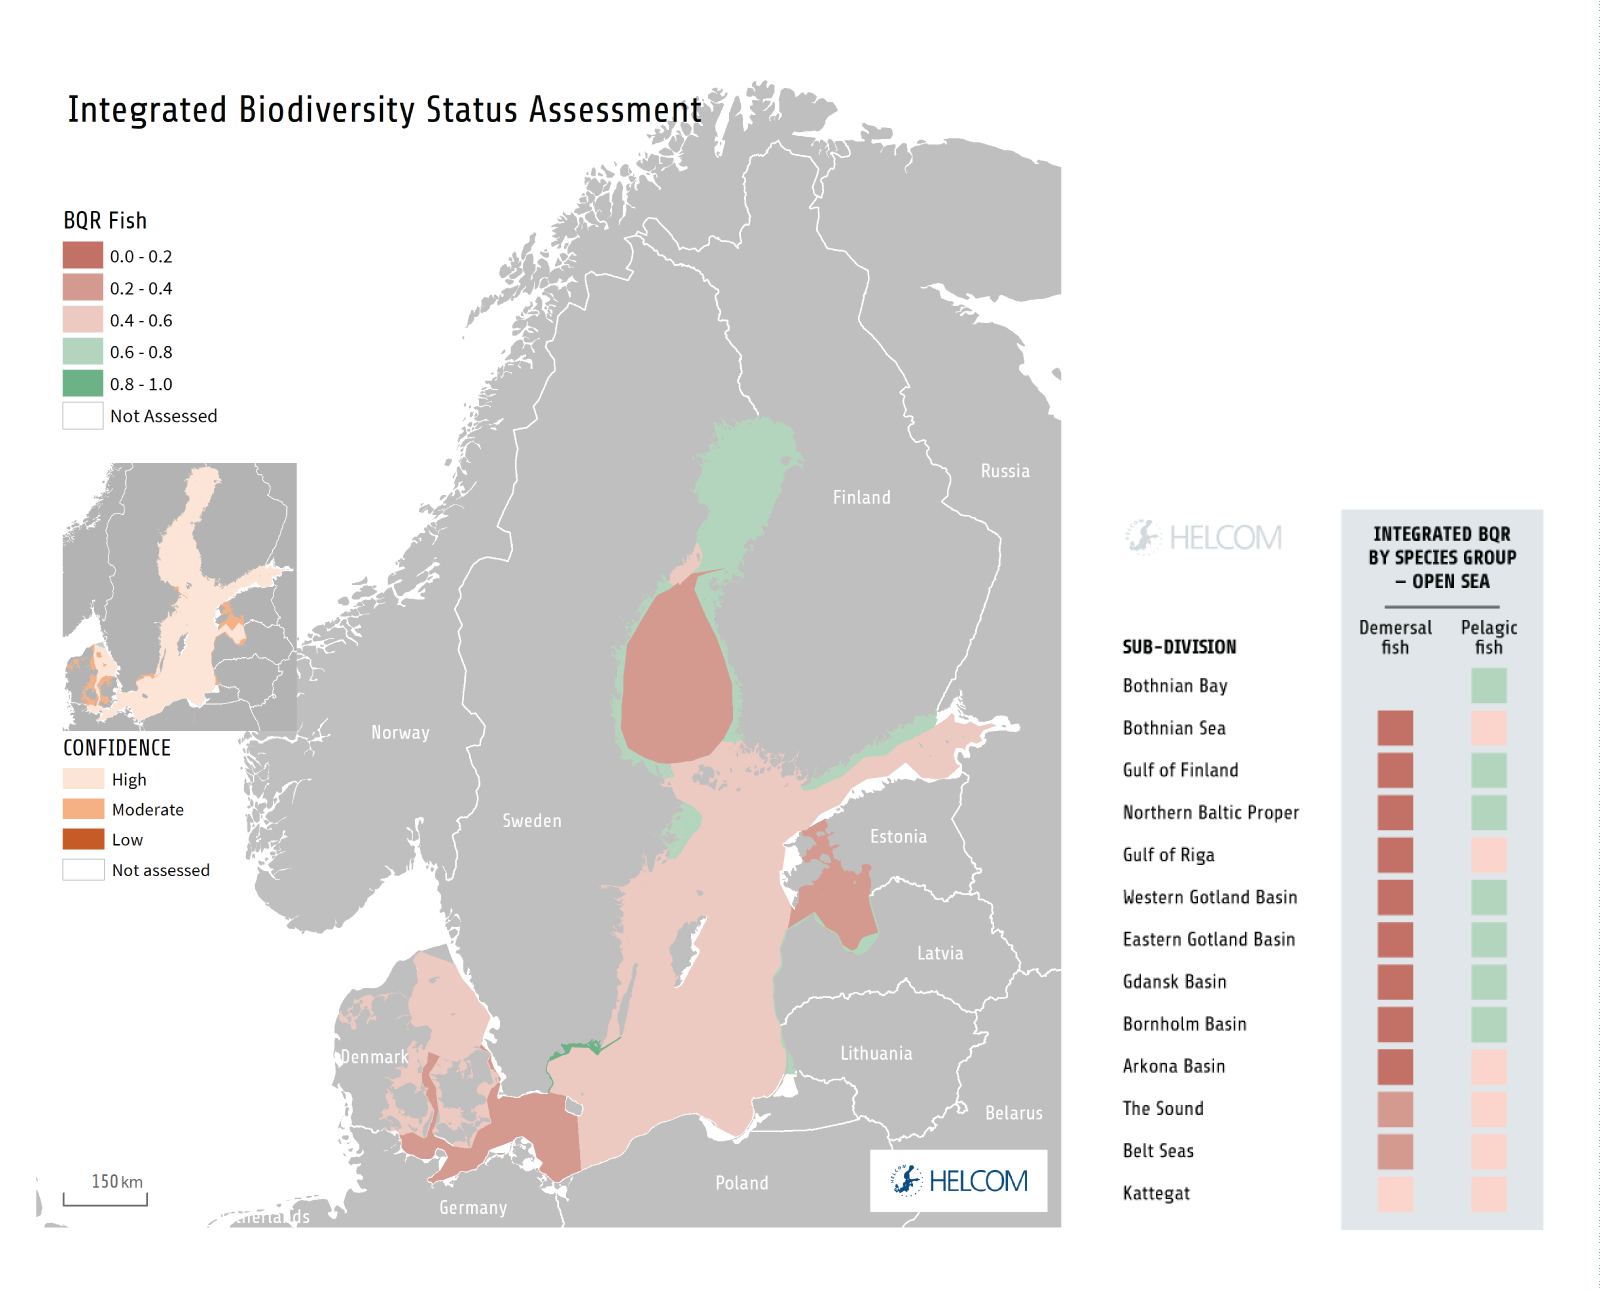 HELCOM HOLASII Fig 5.3.1 Integrated Biodiversity Status Assessment Fish